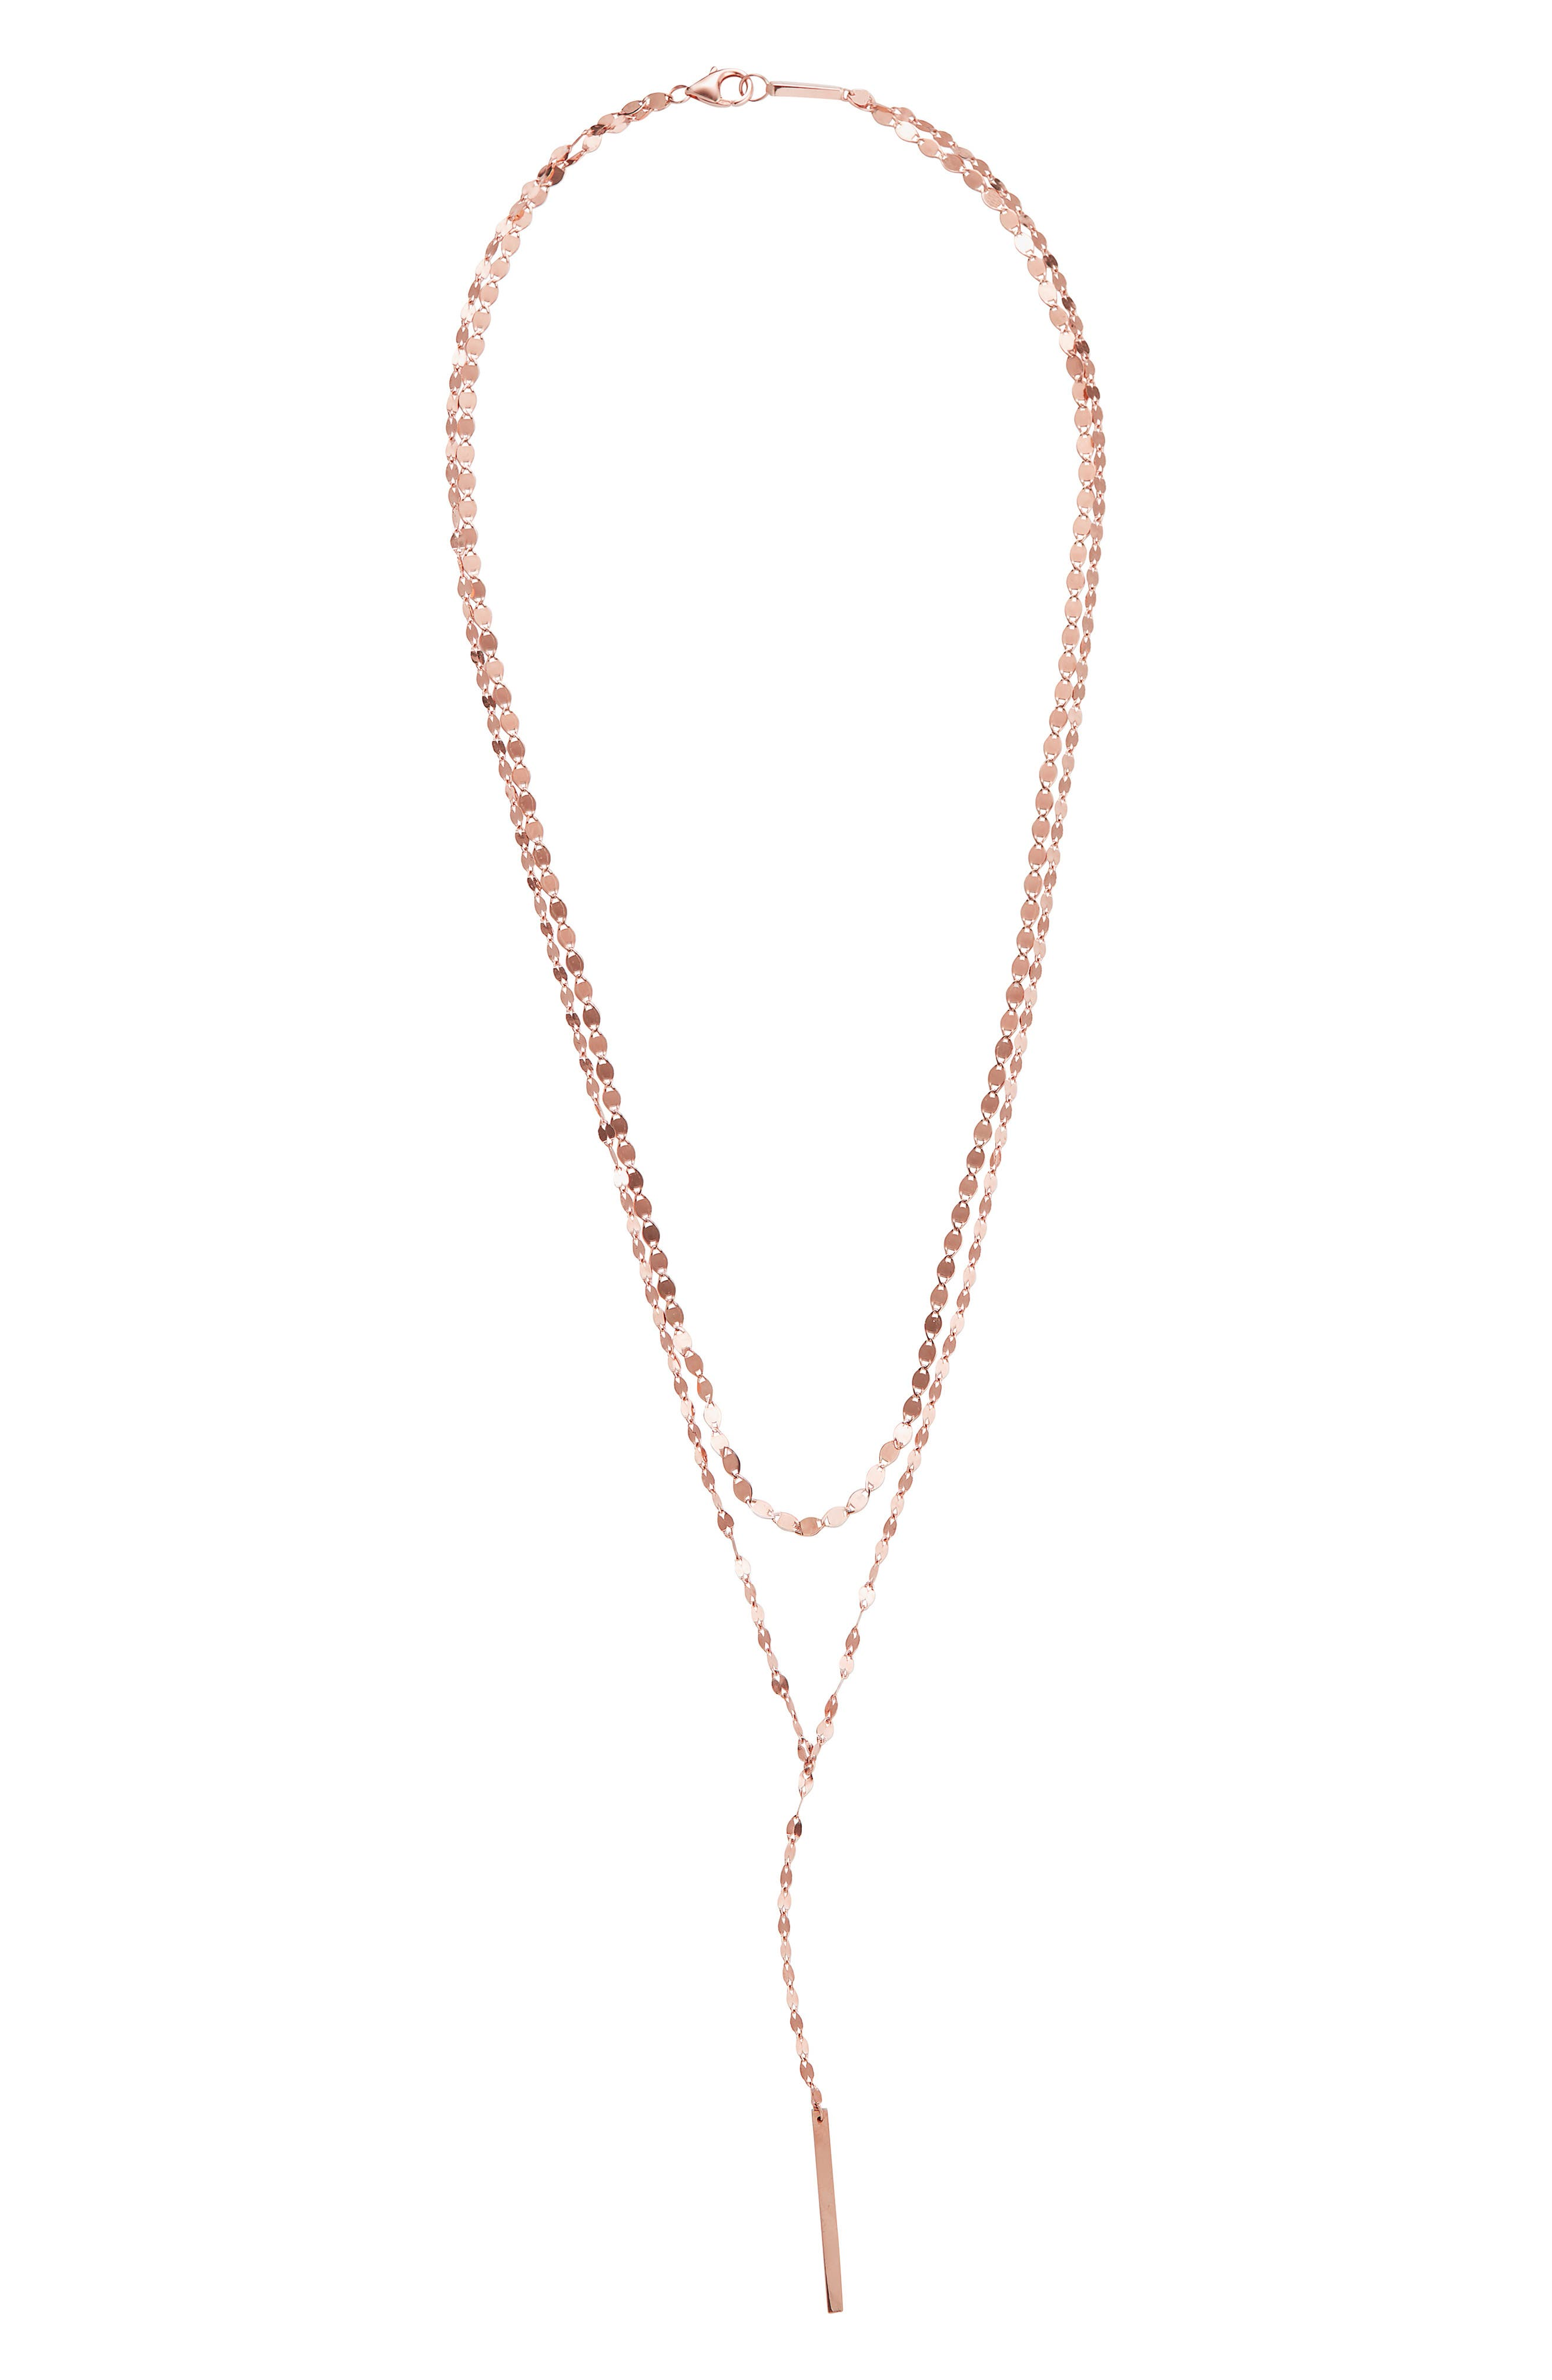 LANA JEWELRY Y-Necklace in Rose Gold